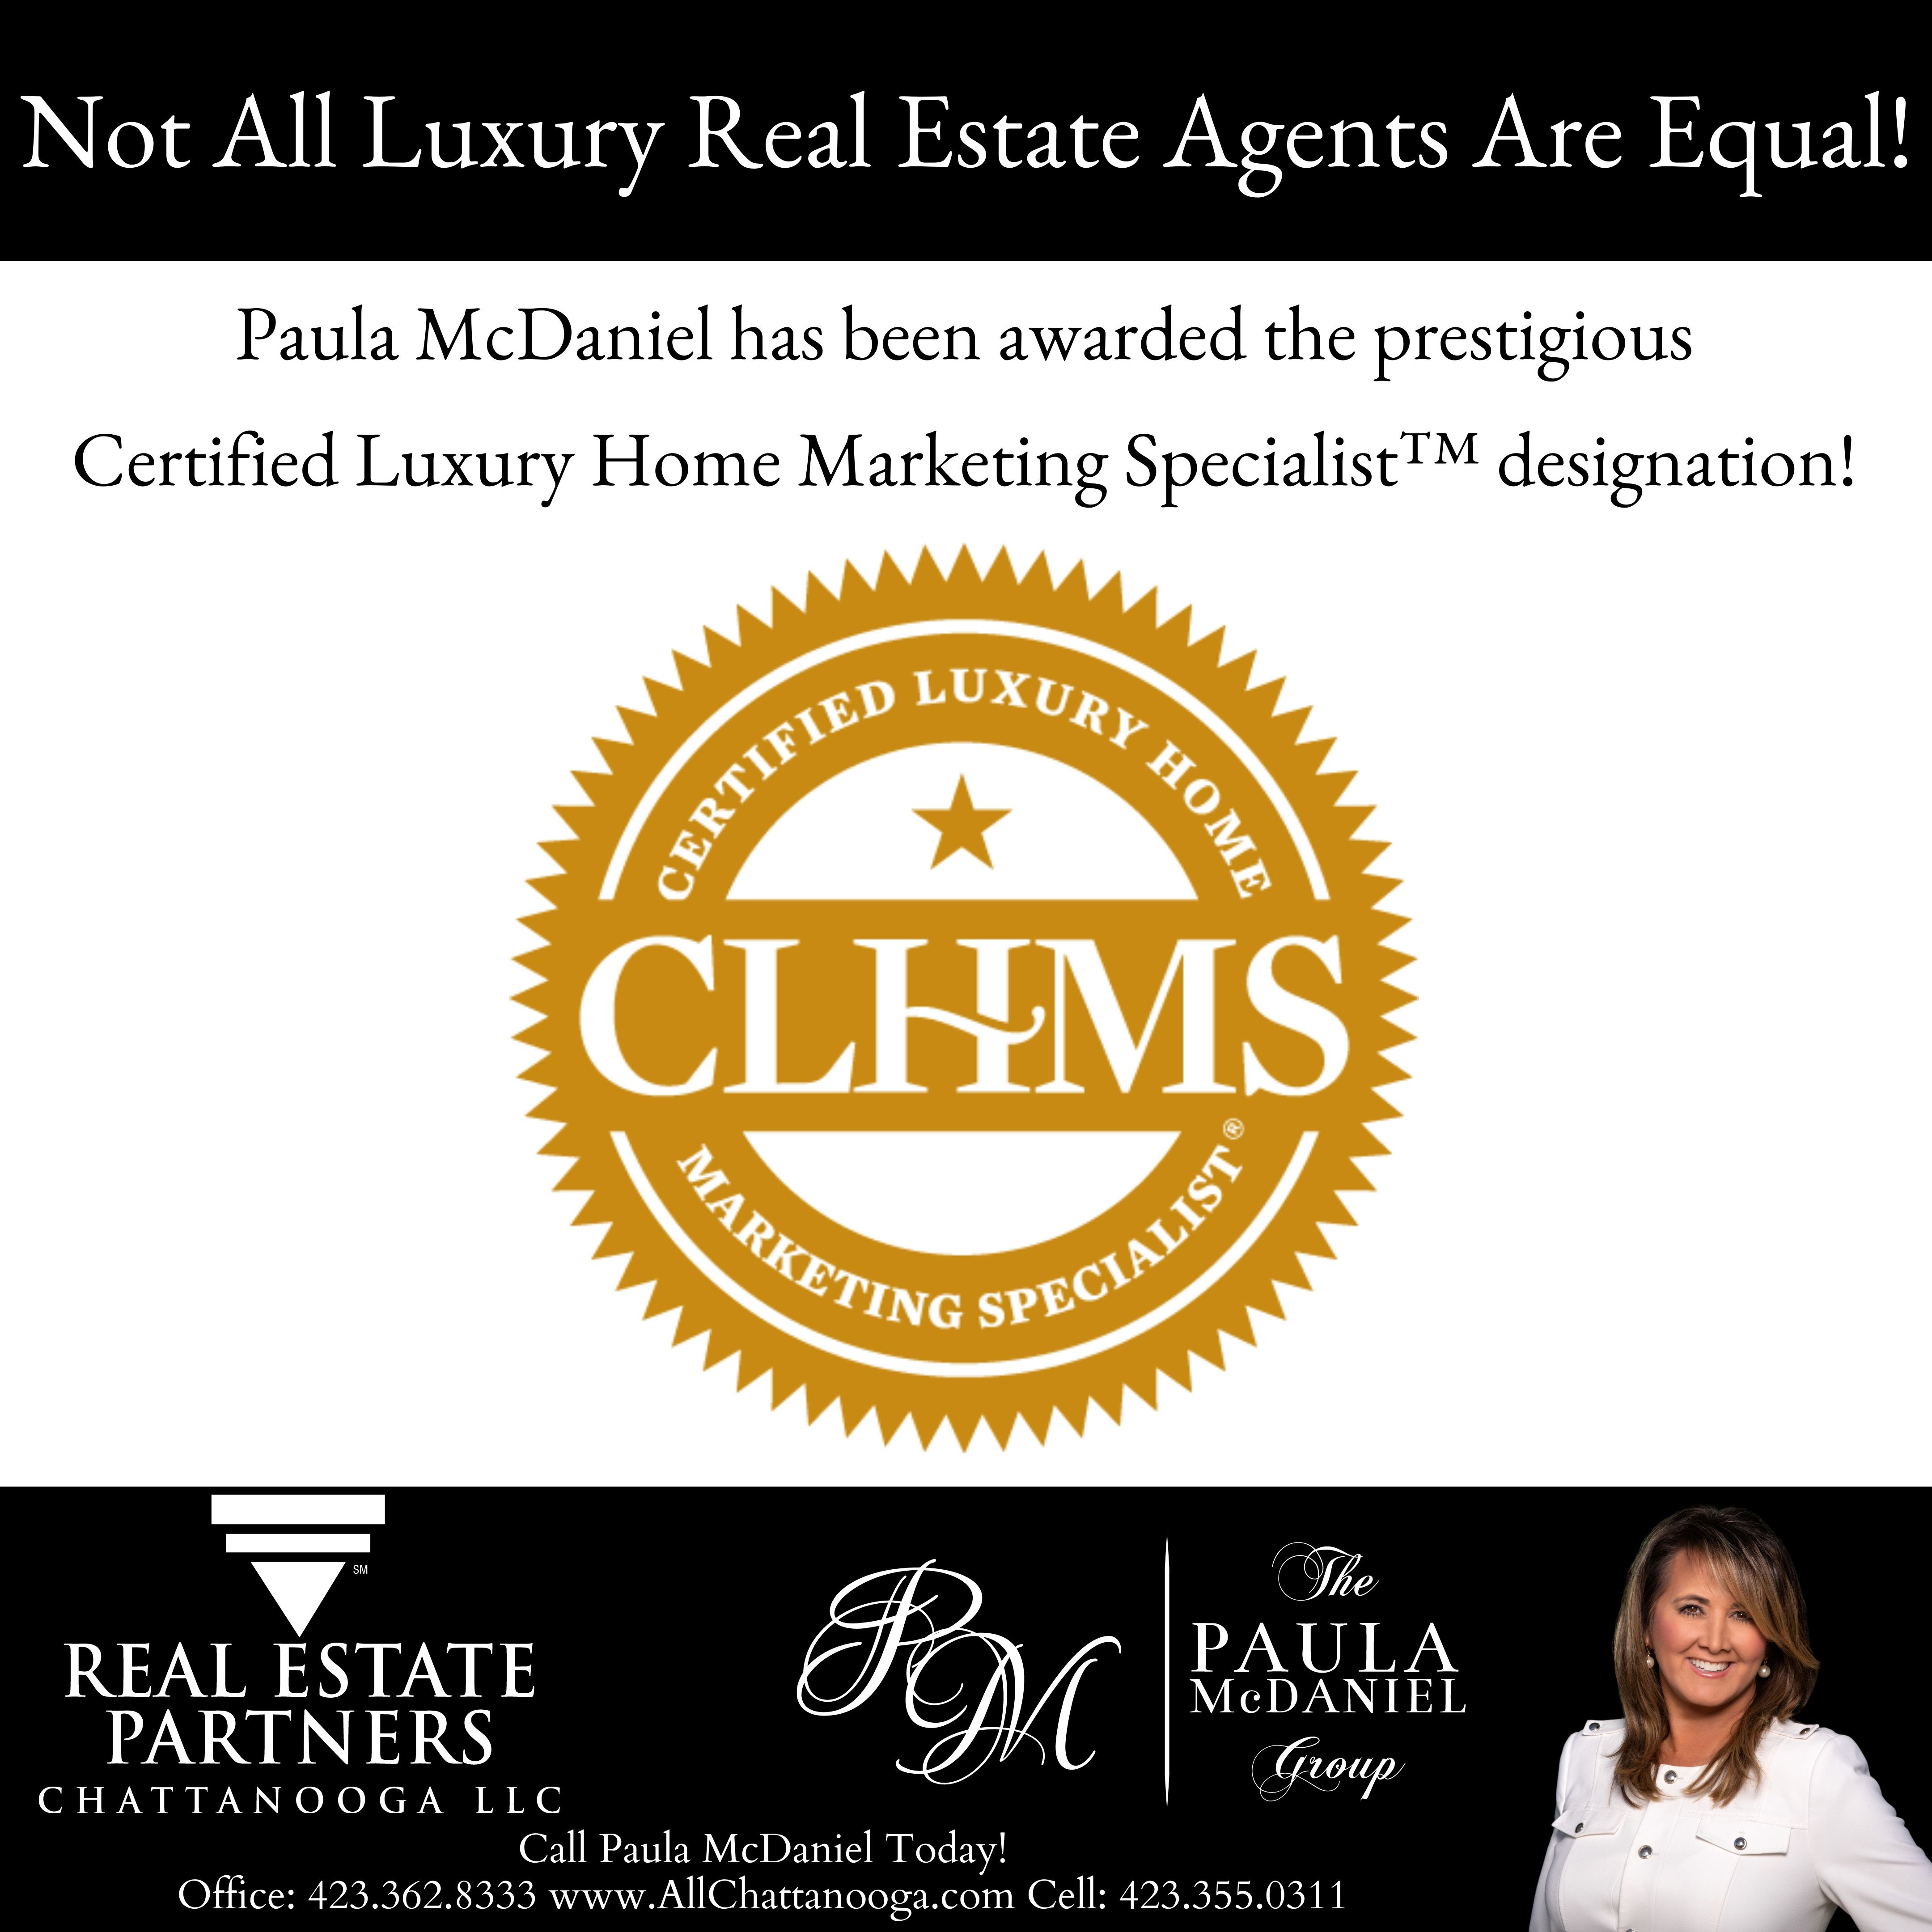 Paula Mcdaniel Has Been Awarded The Prestigious Certified Luxury Home Marketing Specialist Designation The Paula Mcdaniel Group View Homes For Sale In Chattanooga N Ga And Surrounding Areas Specializing In Luxury